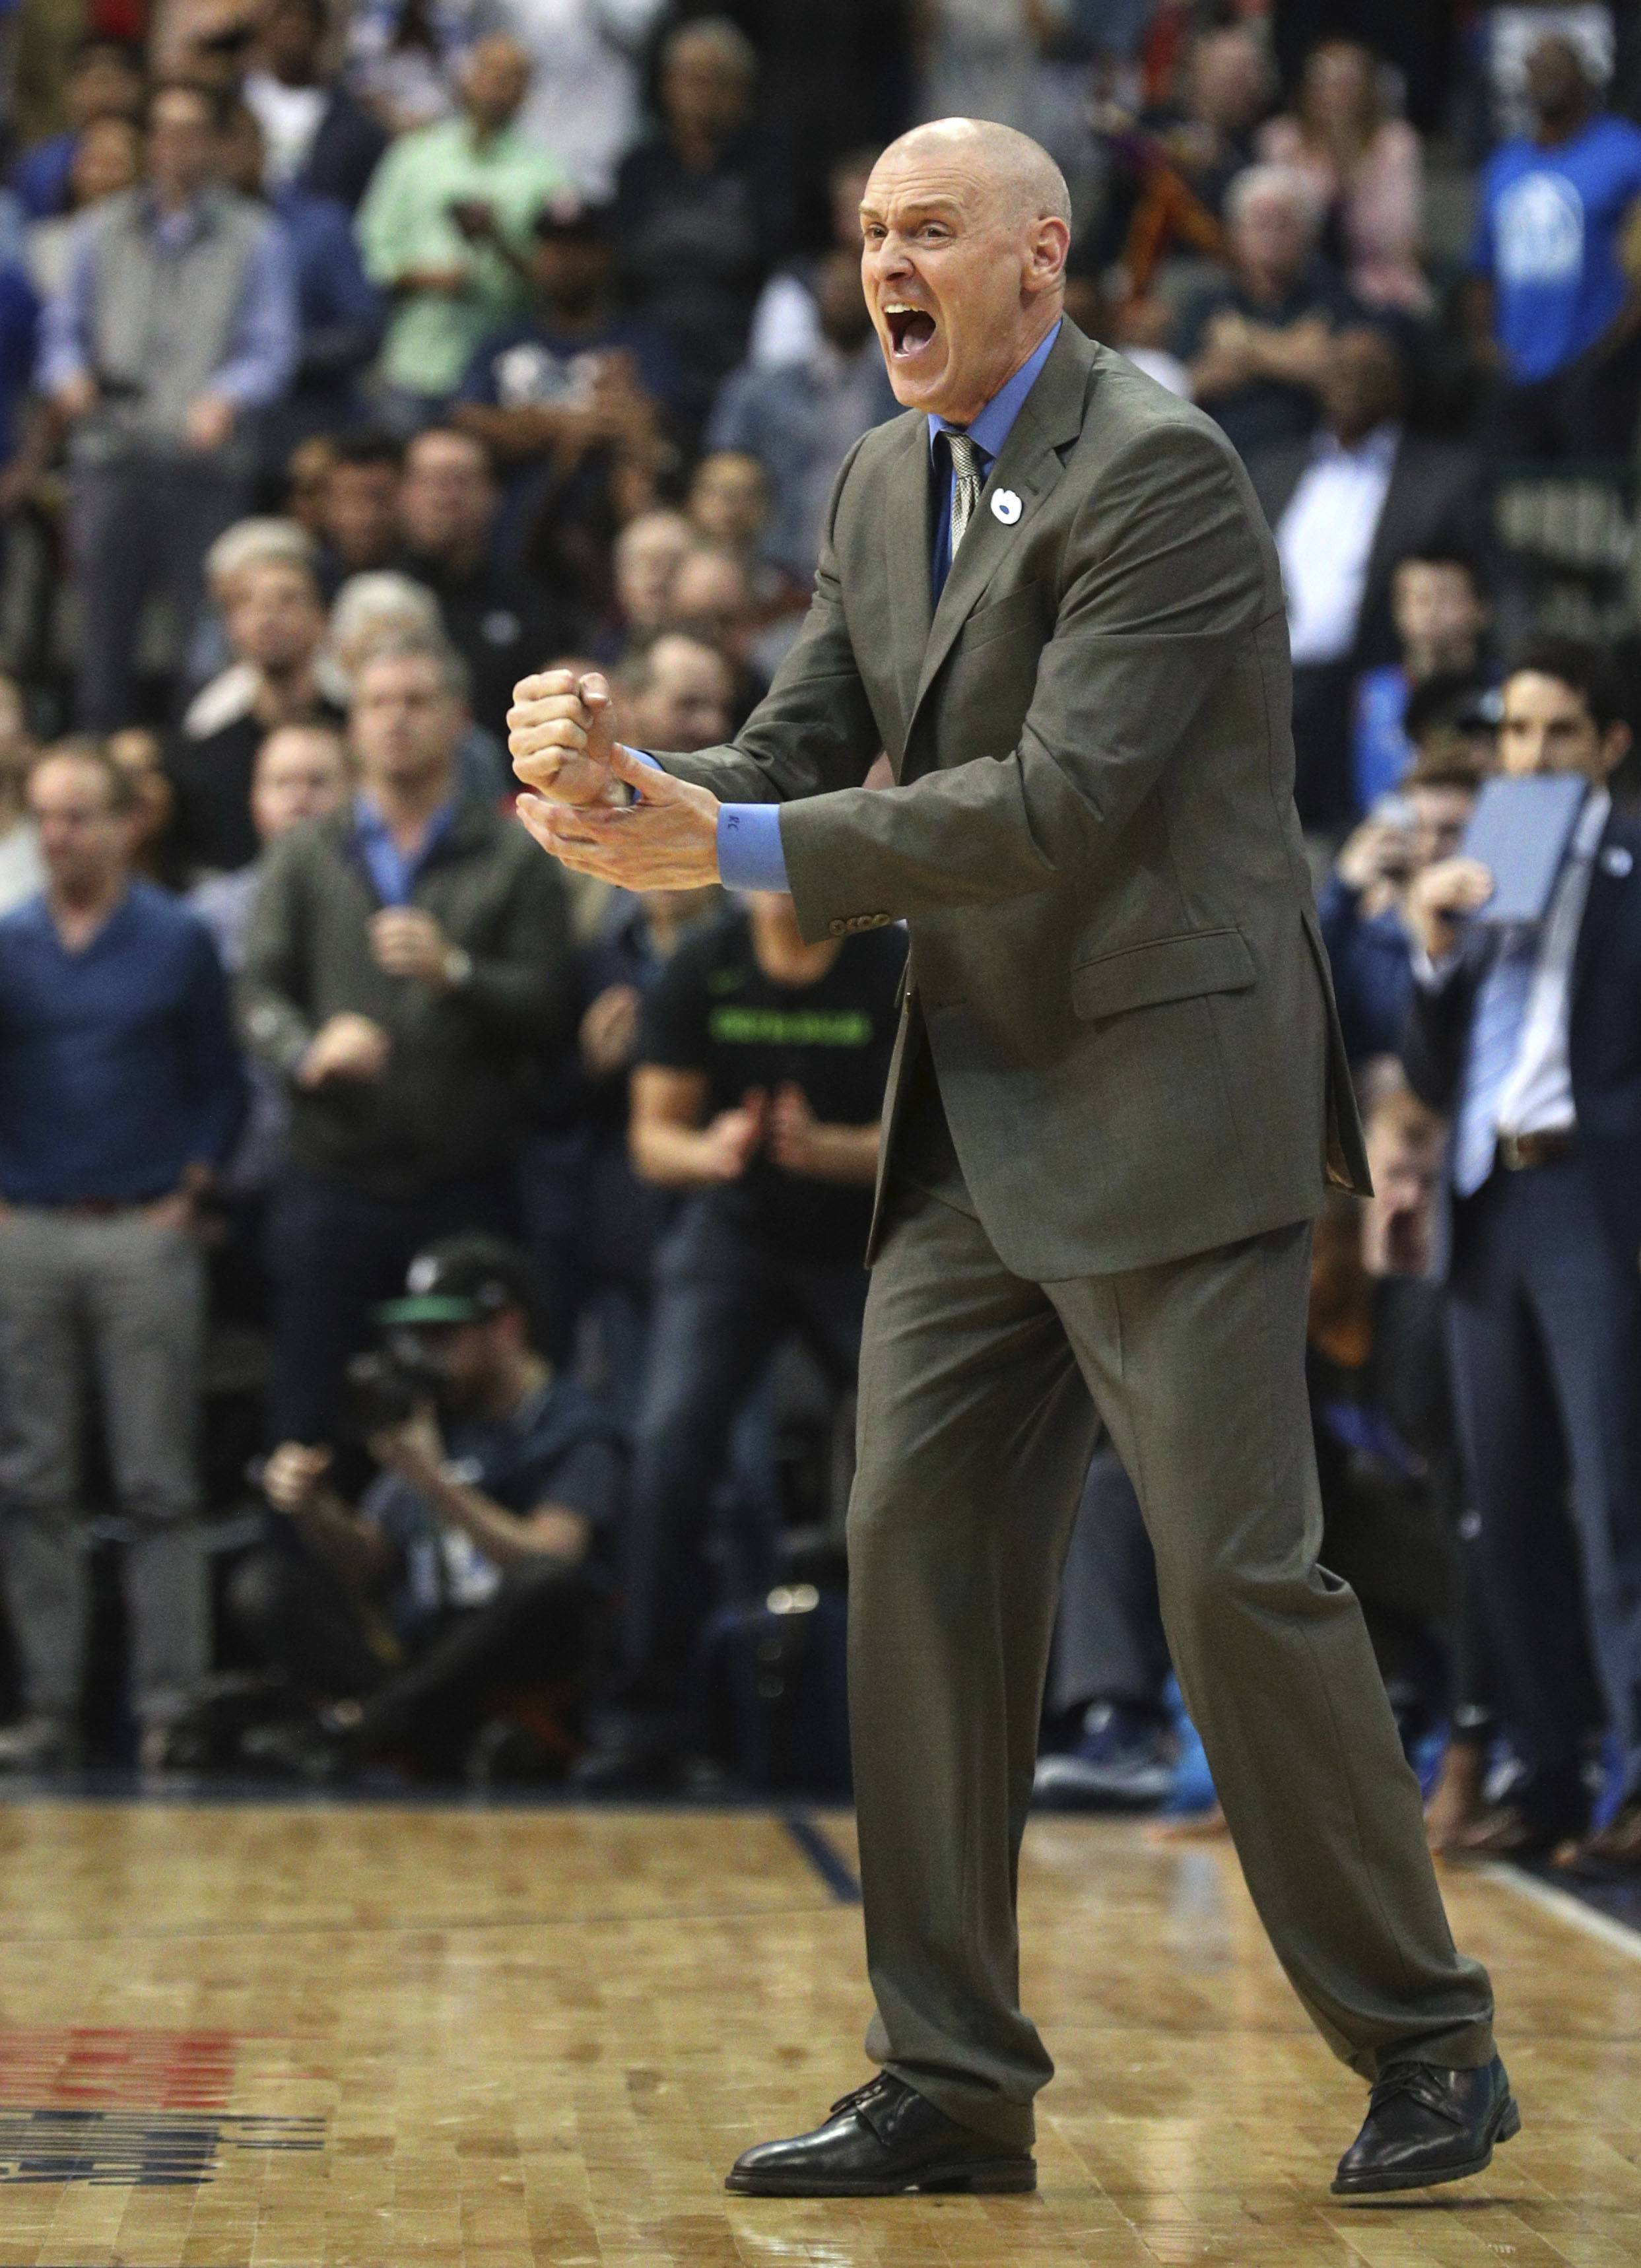 Dallas Mavericks coach Rick Carlisle steps onto the court during overtime of the team's NBA basketball game against the Oklahoma City Thunder on Wednesday, Feb. 28, 2018, in Dallas.